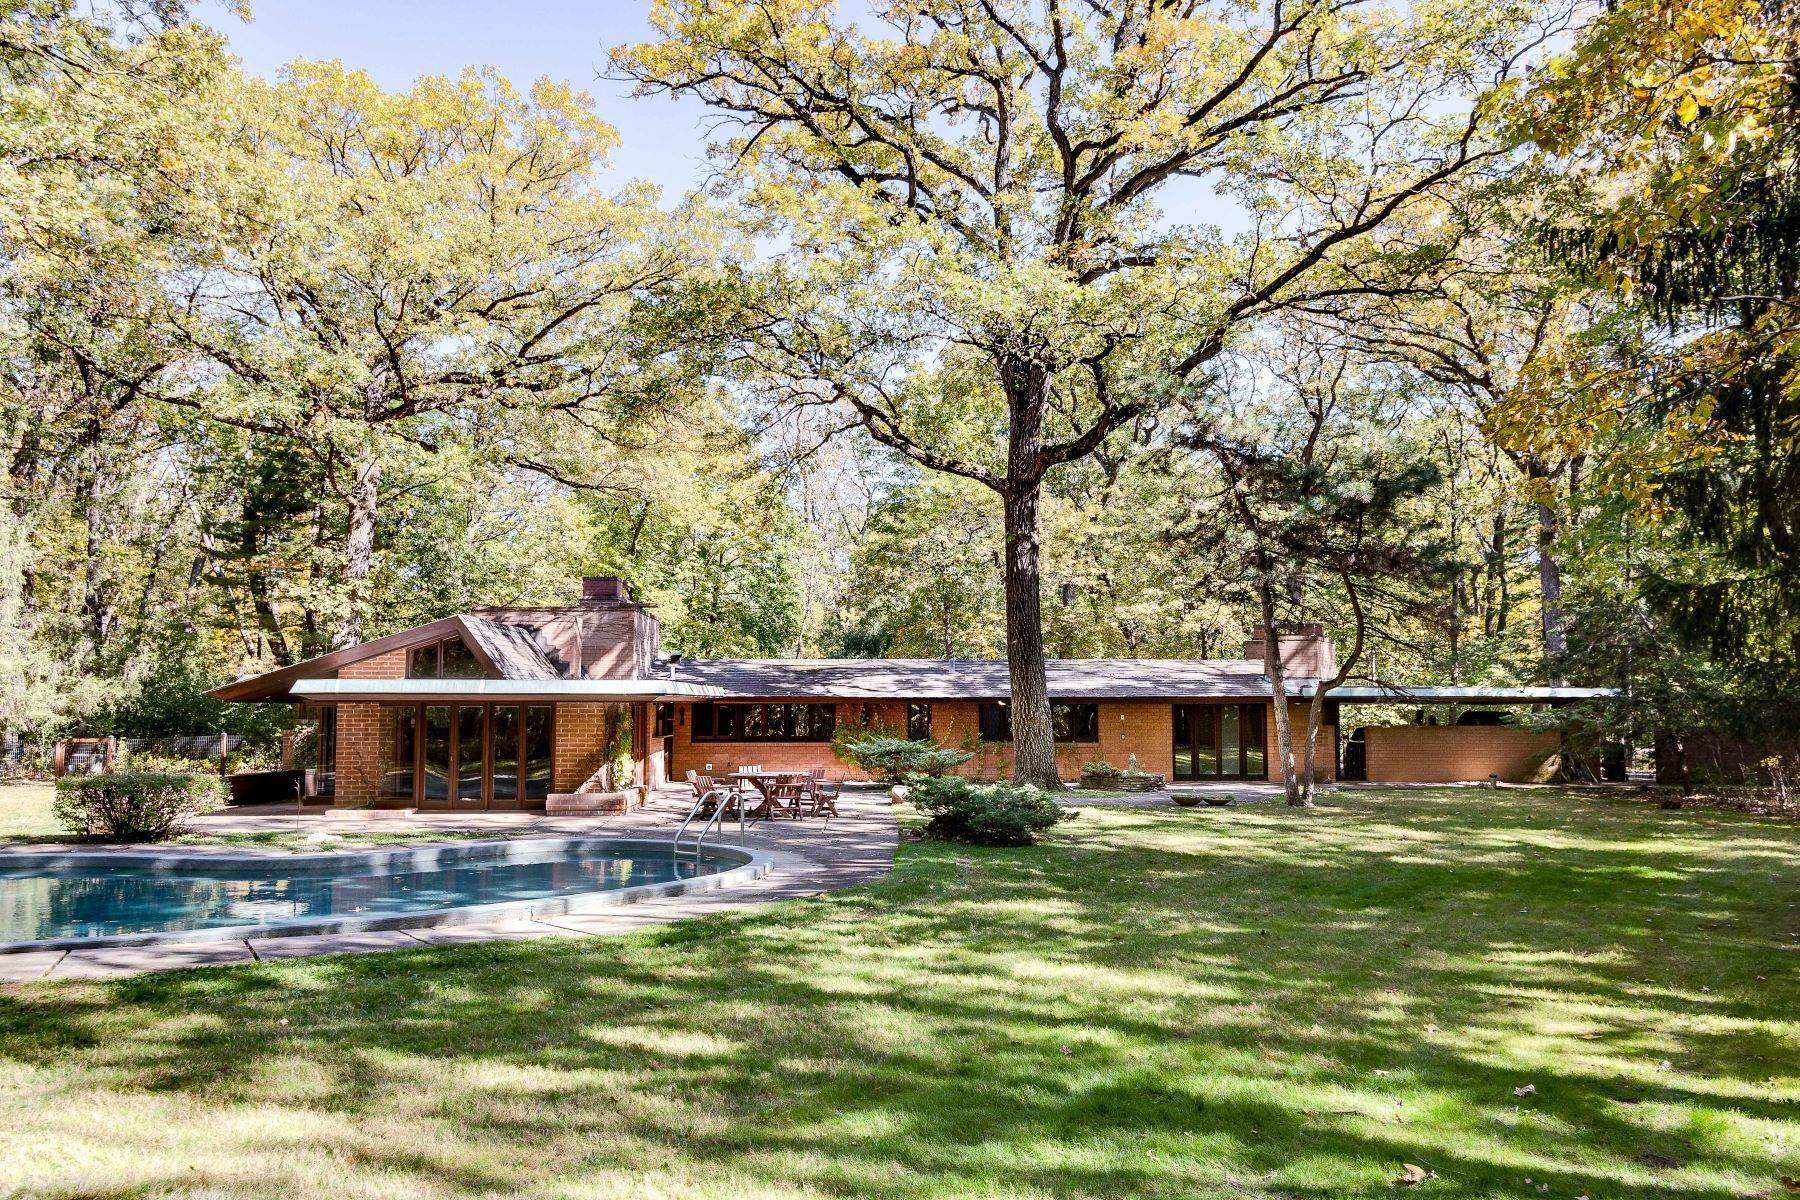 Single Family Homes for Sale at Glenview's Only Frank Lloyd Wright Designed Home 1544 Portage Run Glenview, Illinois 60025 United States